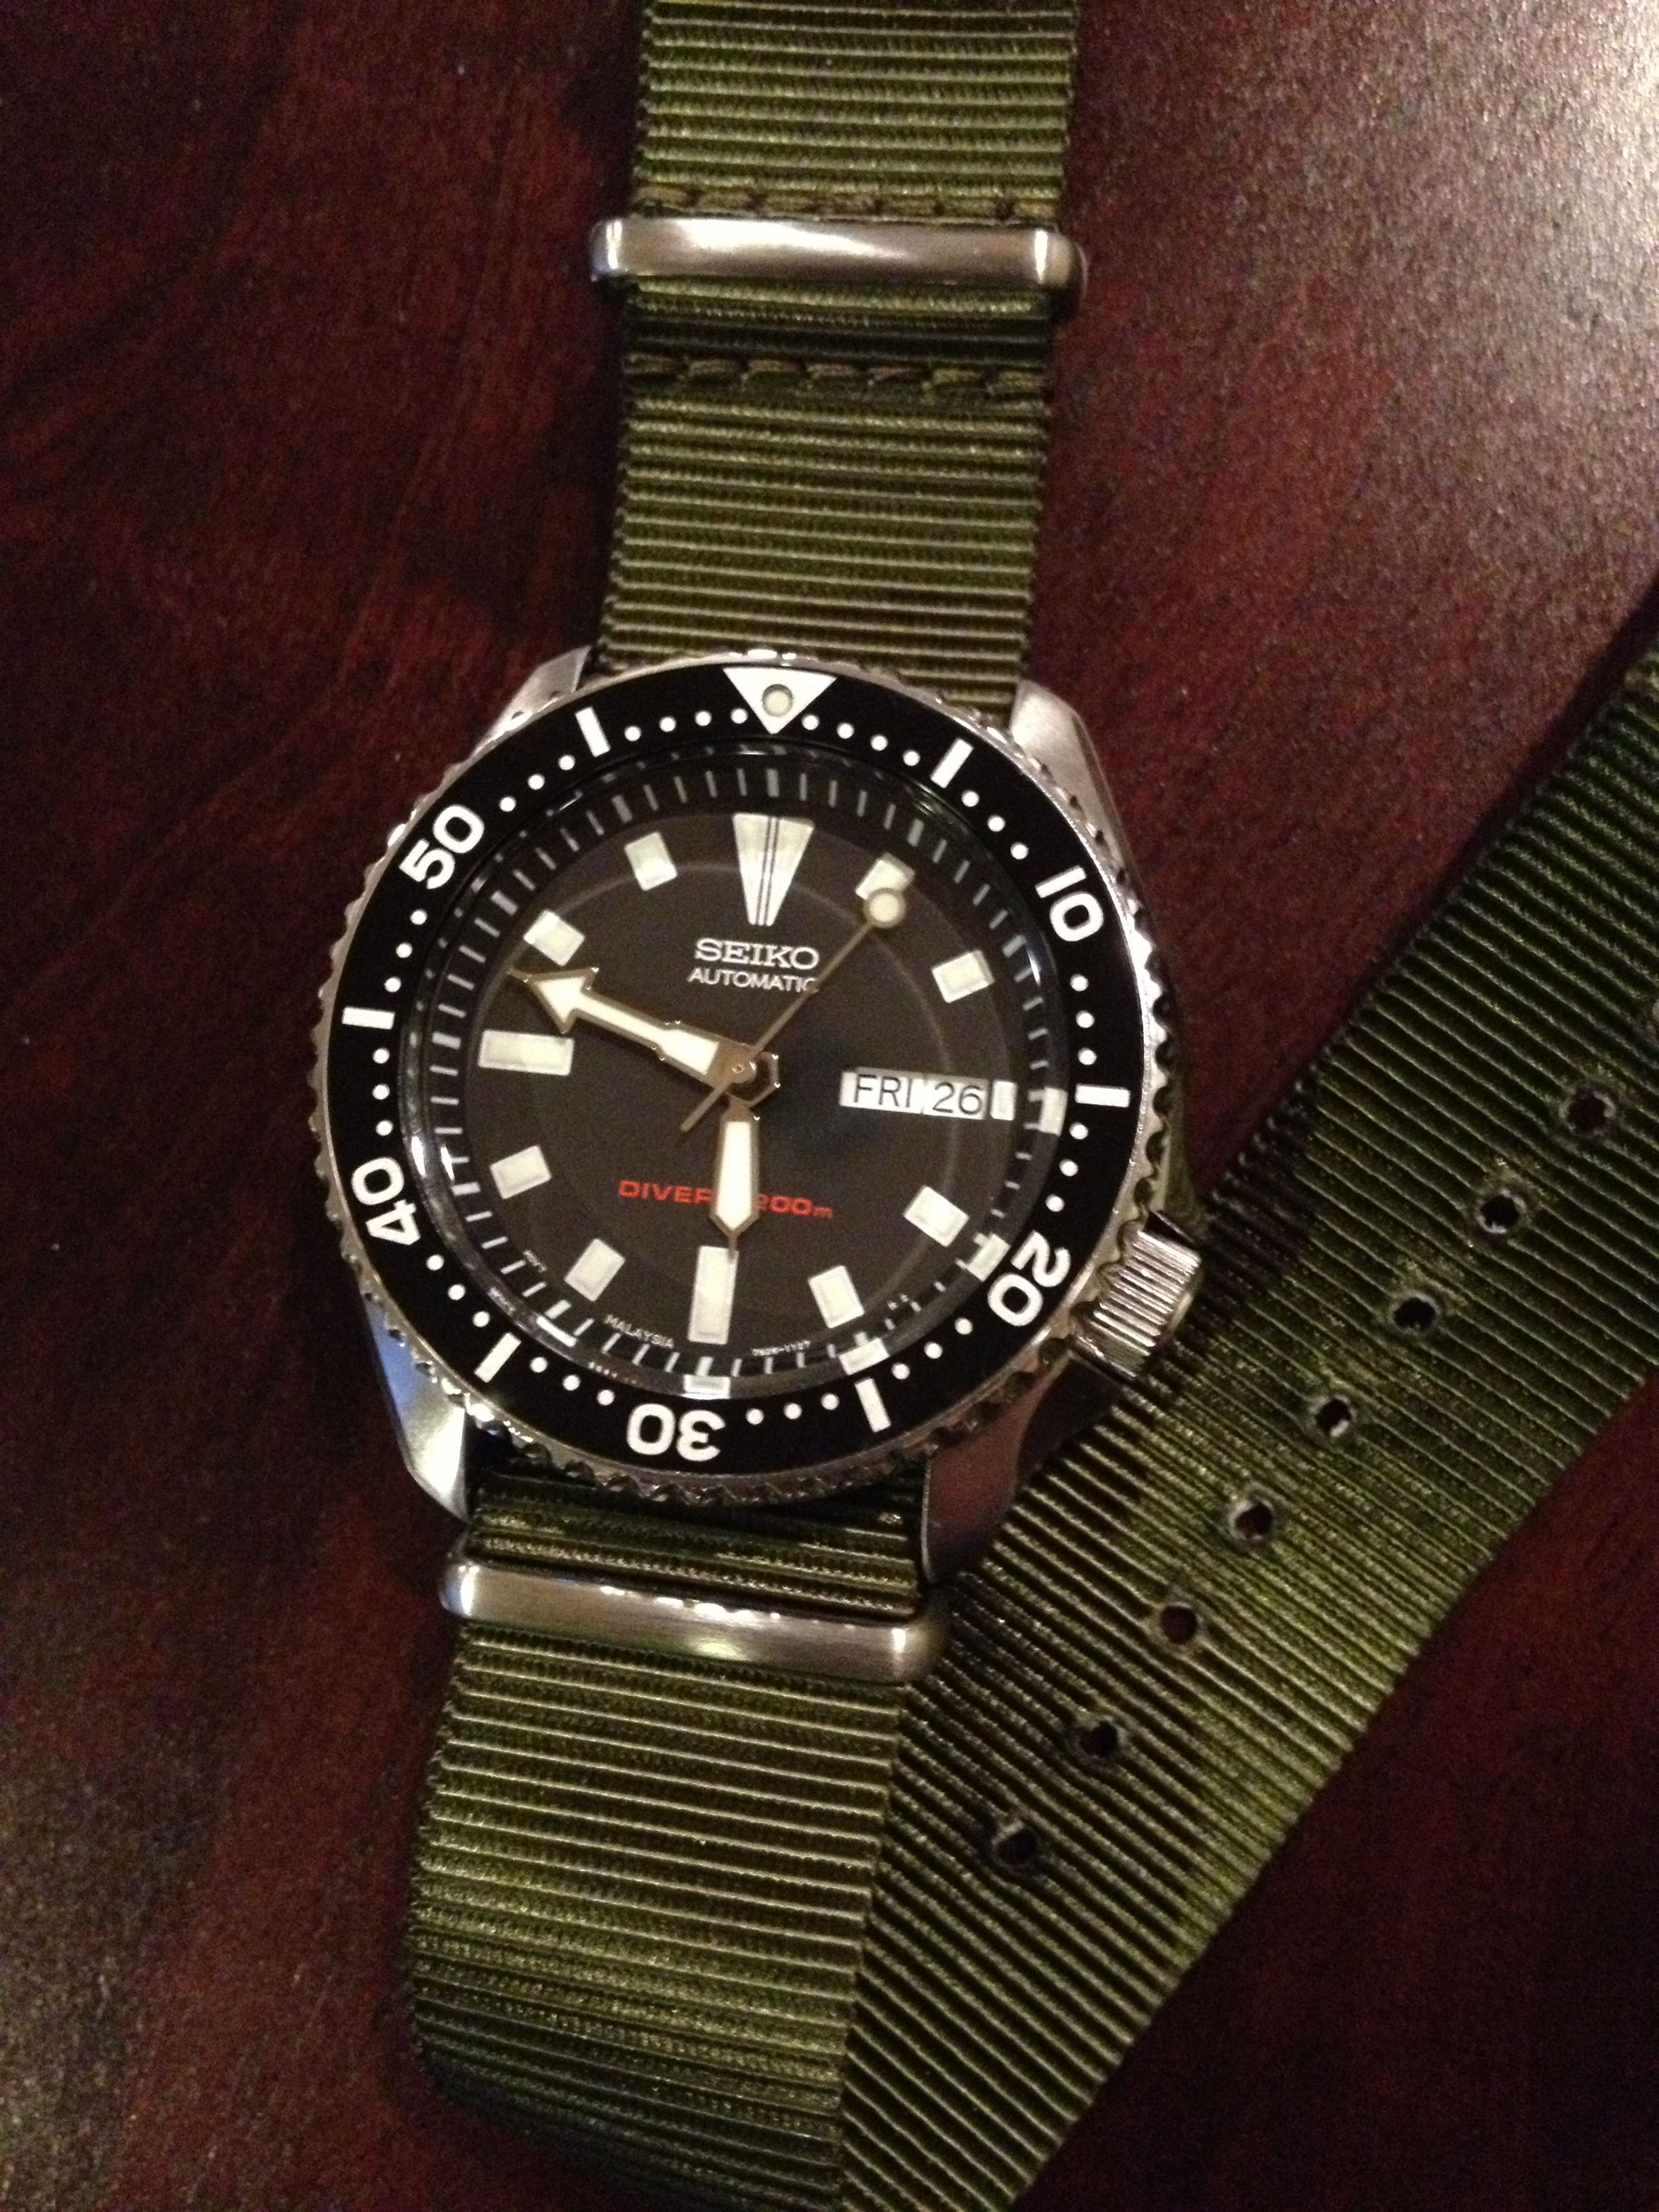 431ddfdf6c7 Seiko SKX173 on olive NATO strap. My newest watch! I will pass this watch  on to my kids someday.